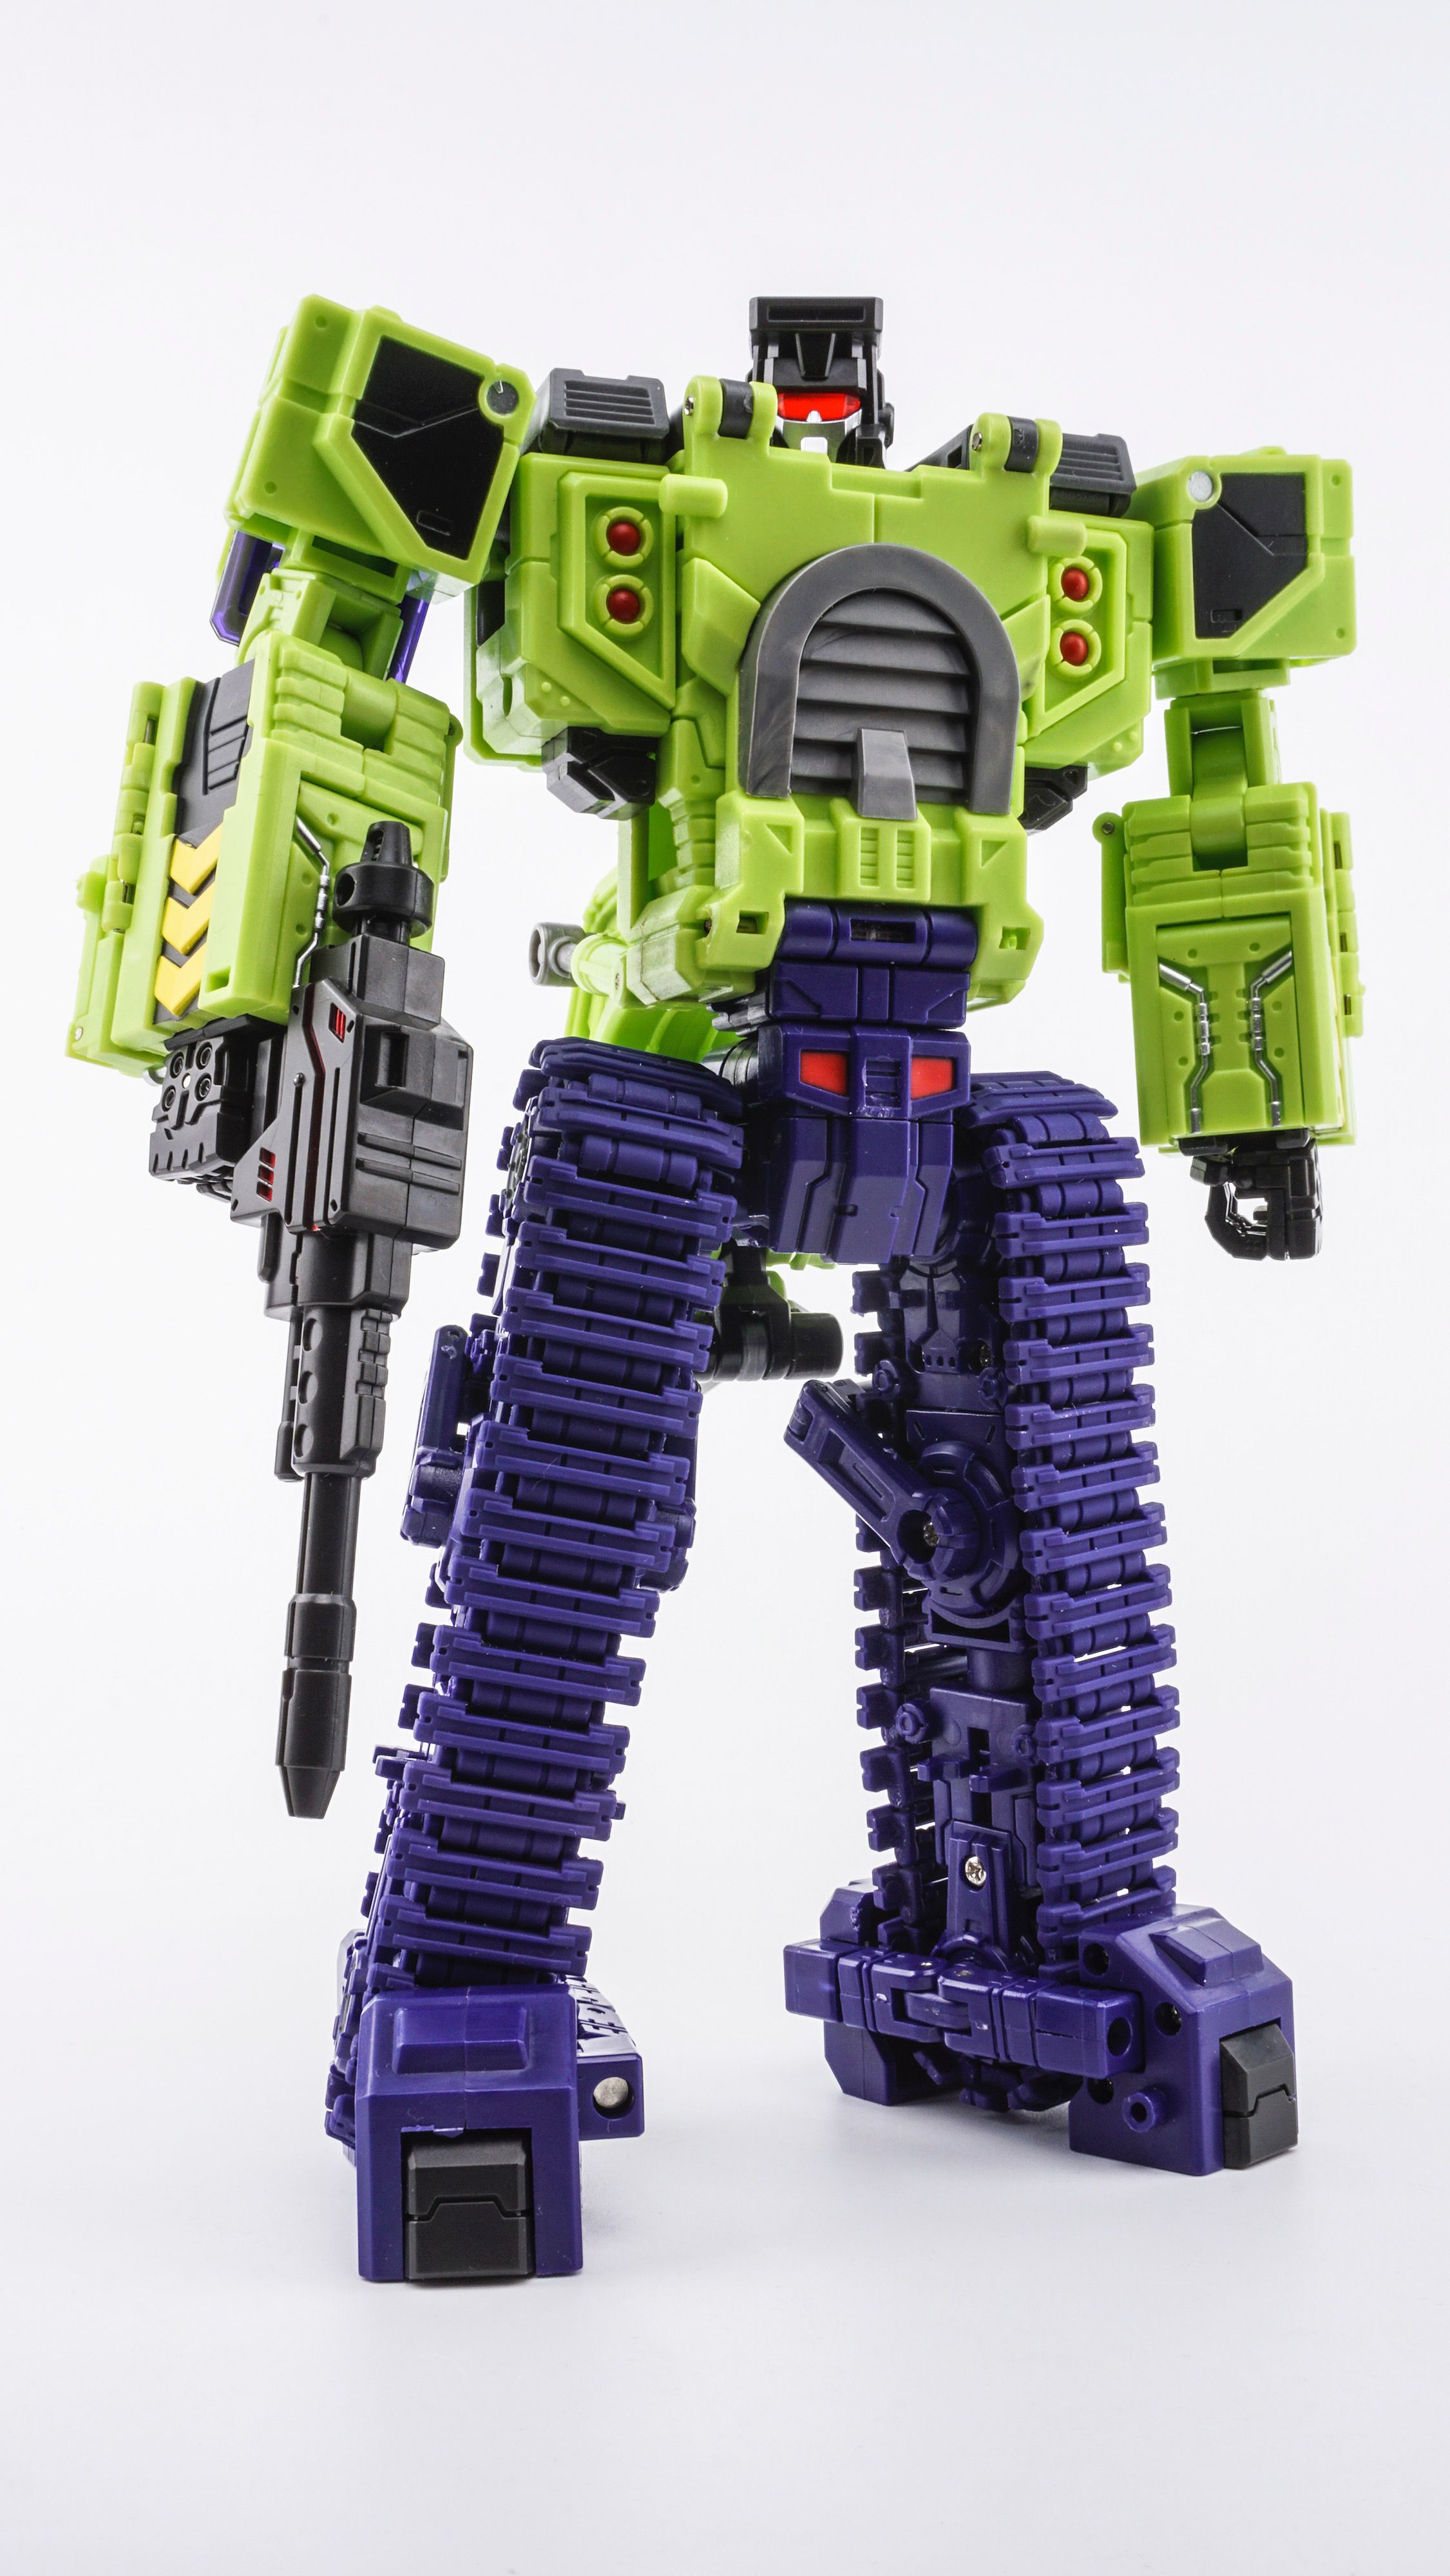 Pin By Clyde Mayer On Models For Nerdom Pinterest Transformers G1 Giant Type 61 Maketoys Find This And More Clydemayer